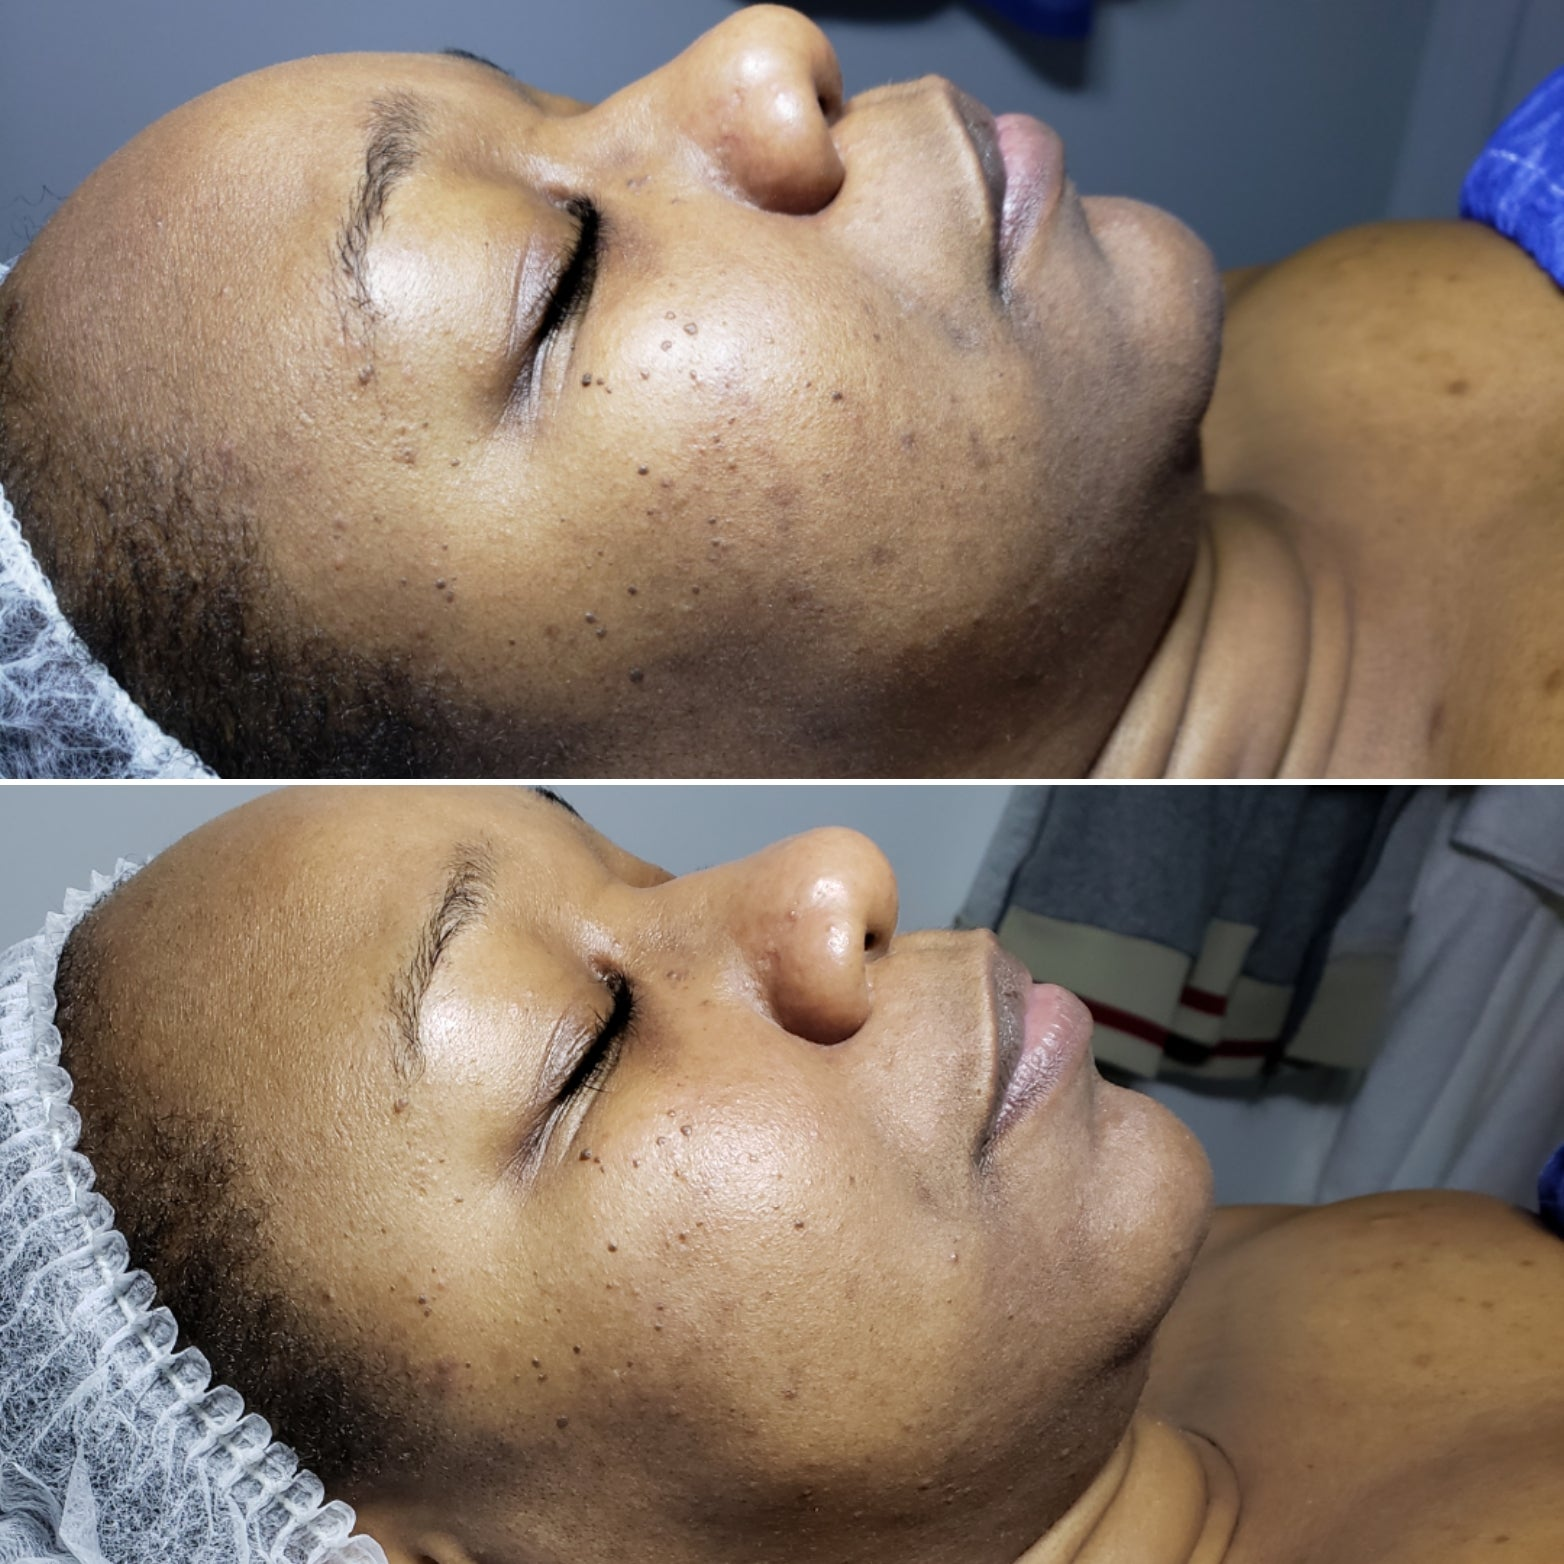 Hyperpigmentation Concerns & How to Treat